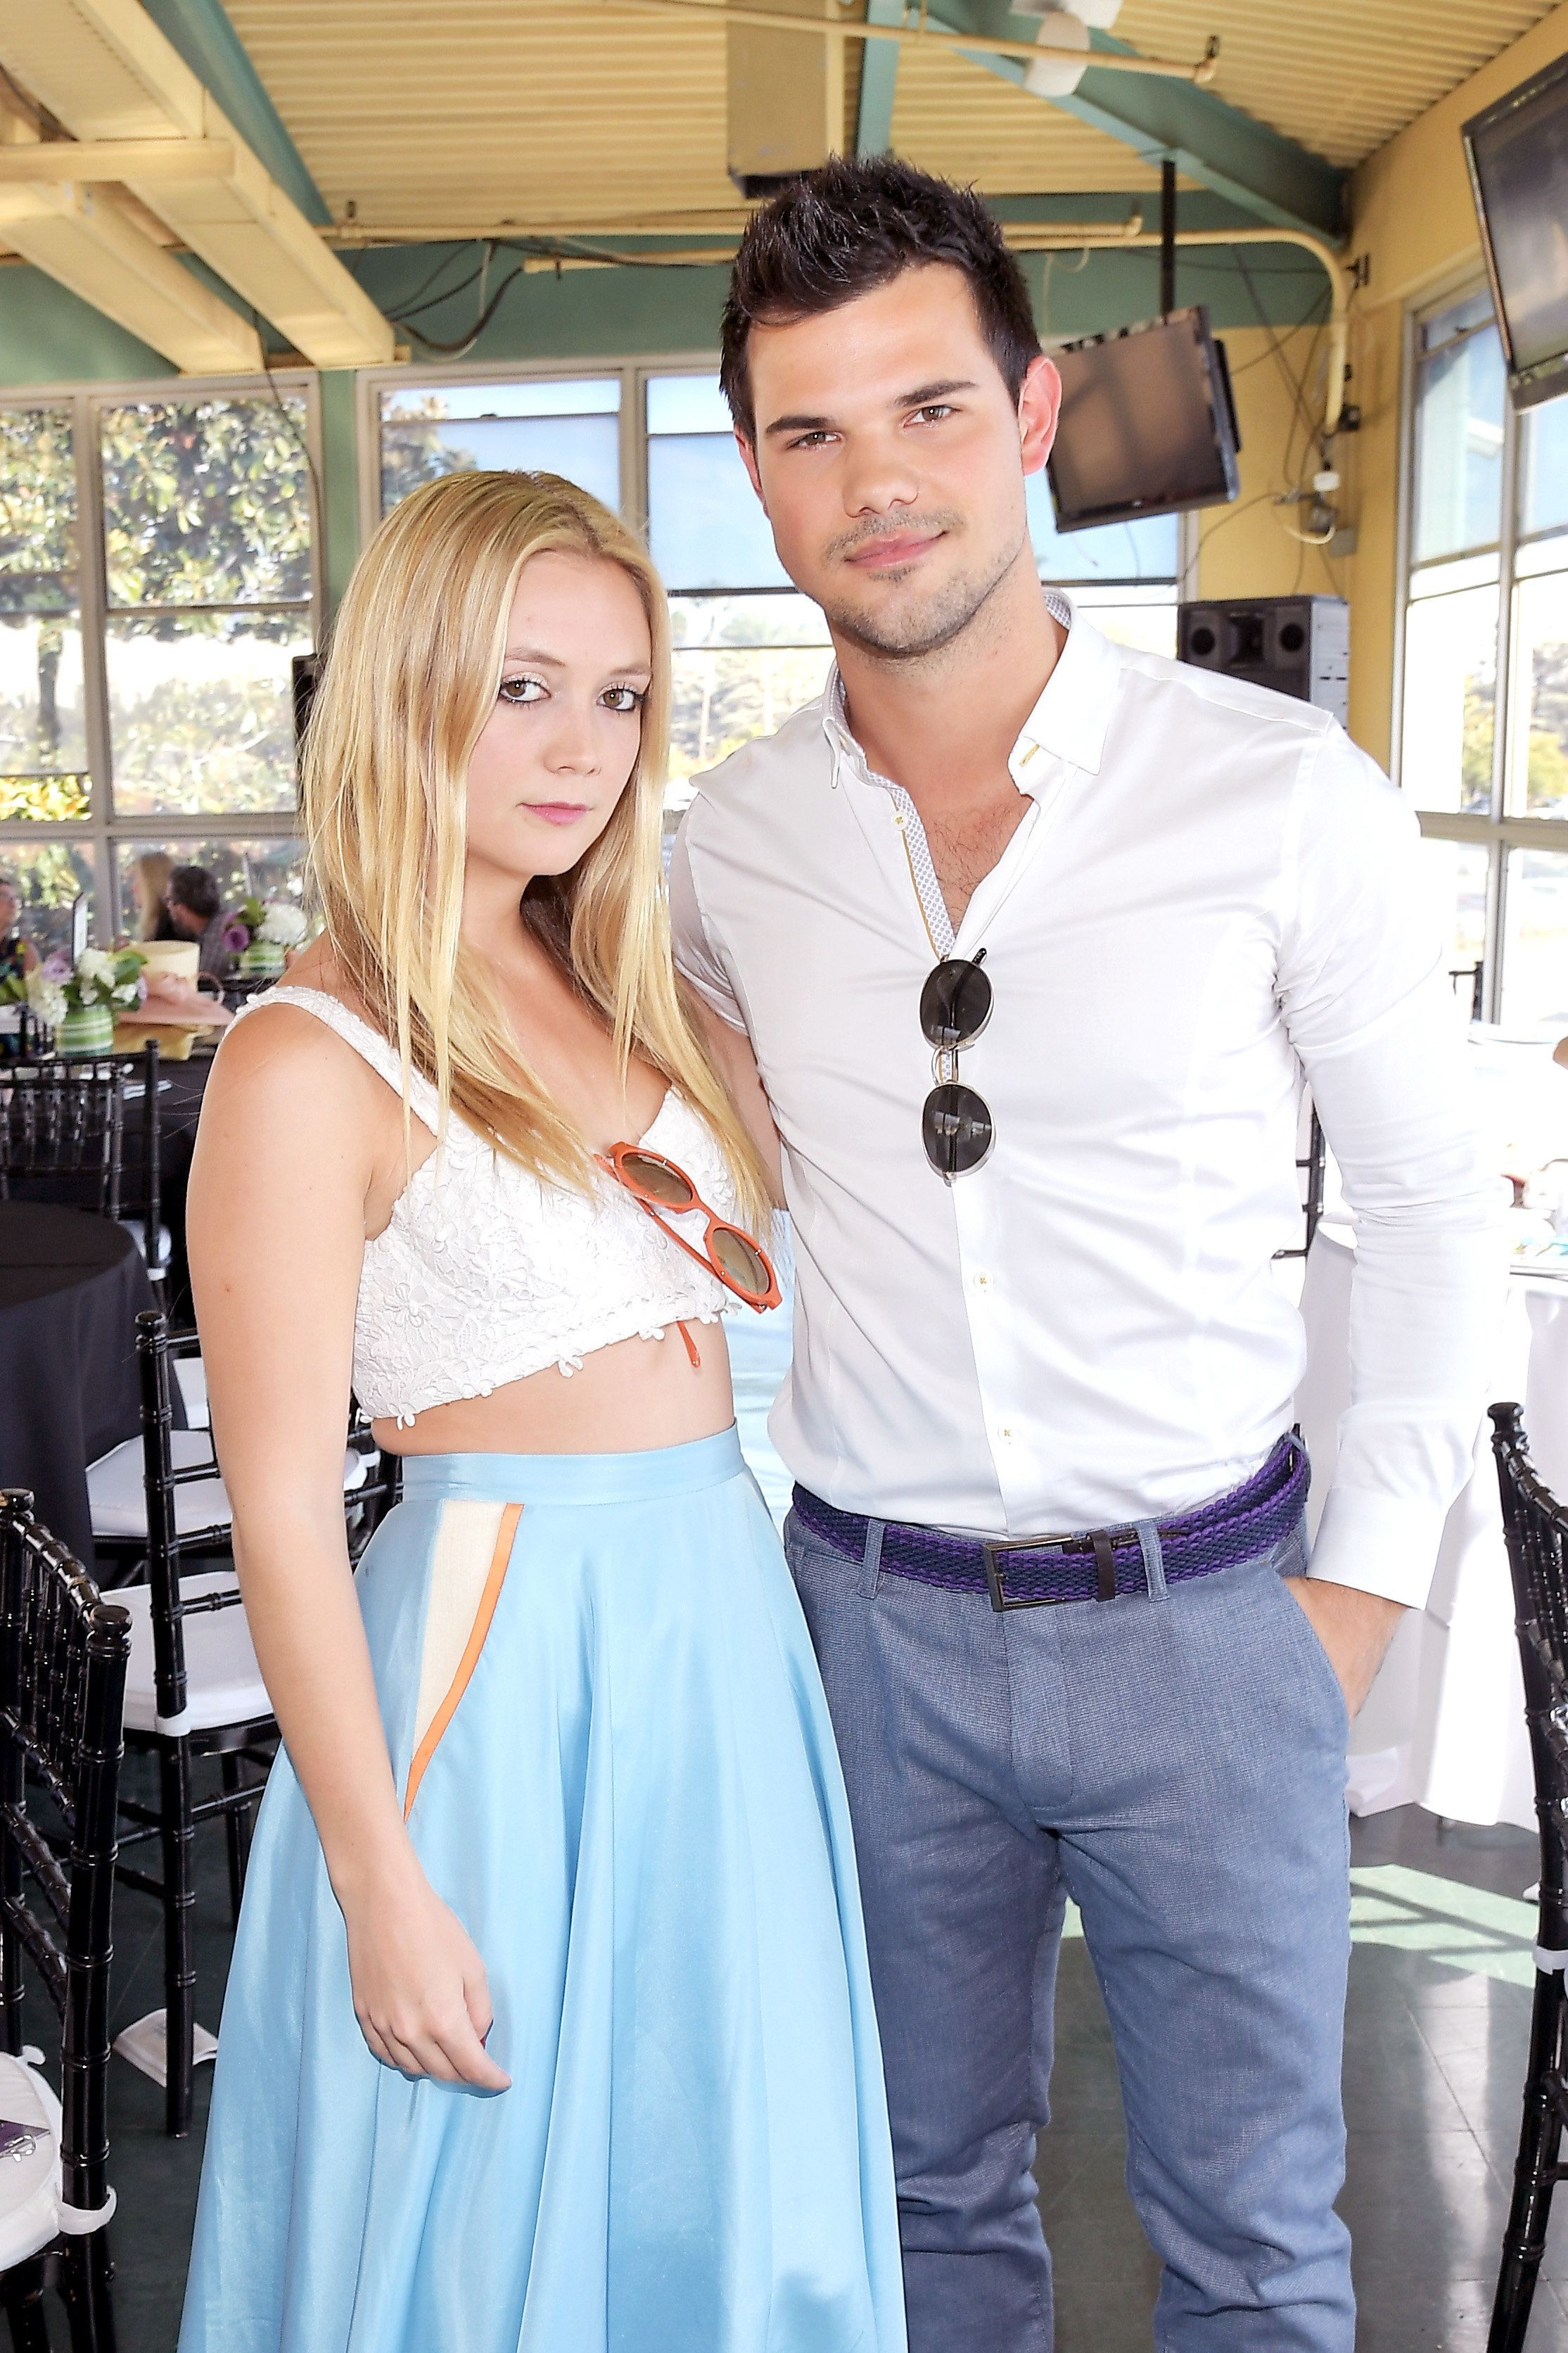 ARCADIA, CA - NOVEMBER 05:  Actors Billie Lourd (L) and Taylor Lautner at the 2016 Breeders' Cup World Championships at Santa Anita Park on November 5, 2016 in Arcadia, California.  (Photo by Charley Gallay/Getty Images for Breeders' Cup)